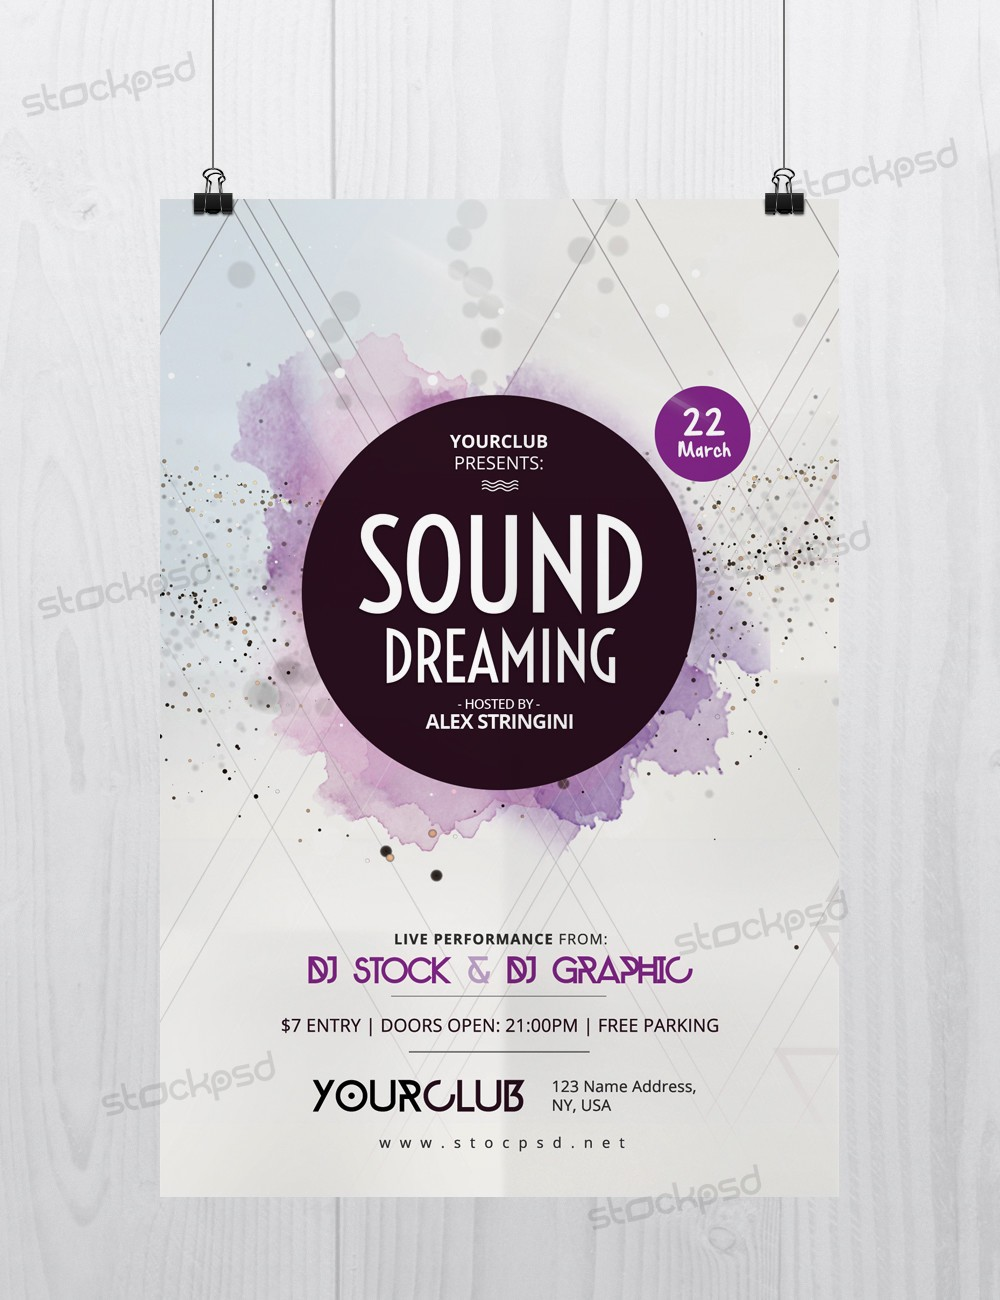 Sound Dreaming - Download Free Photoshop PSD Flyer Template